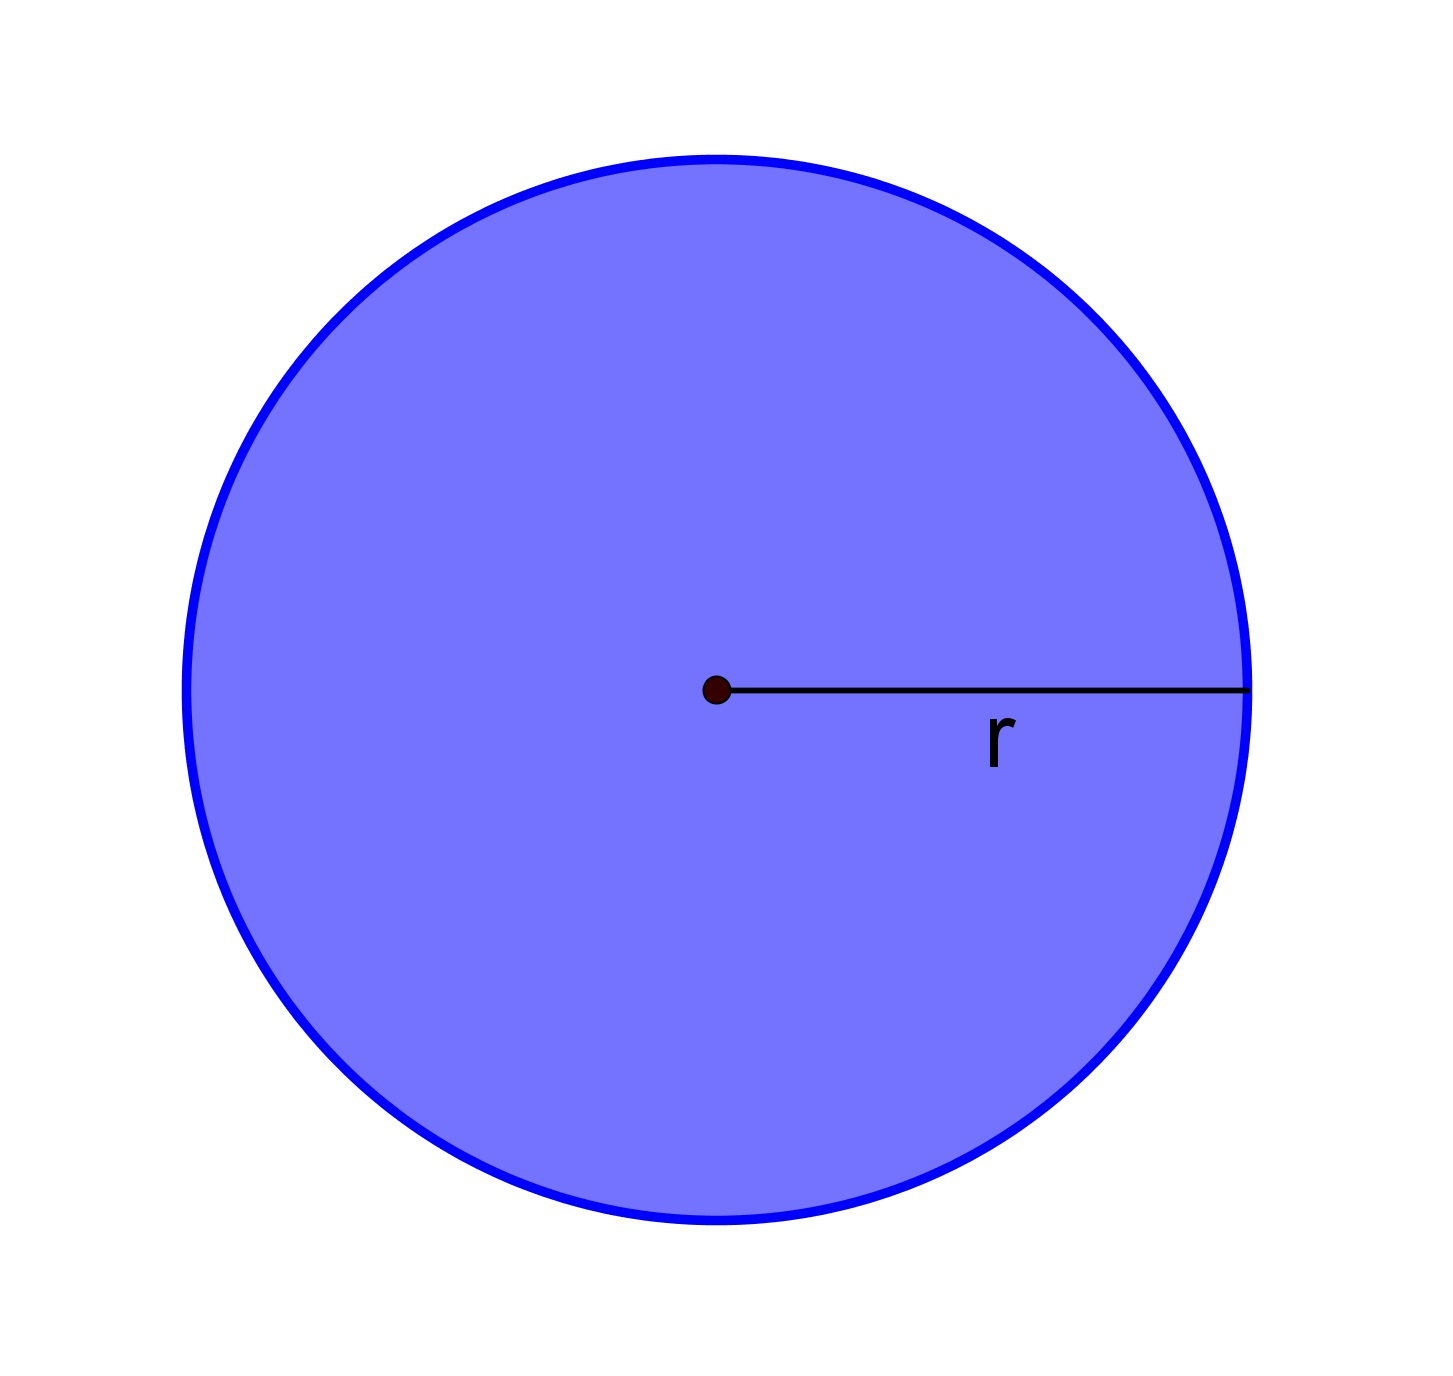 The Other Sector Can Simply Be Found By Using $2\pi\theta$2�− θ In The  Formula For The Area Of A Sector